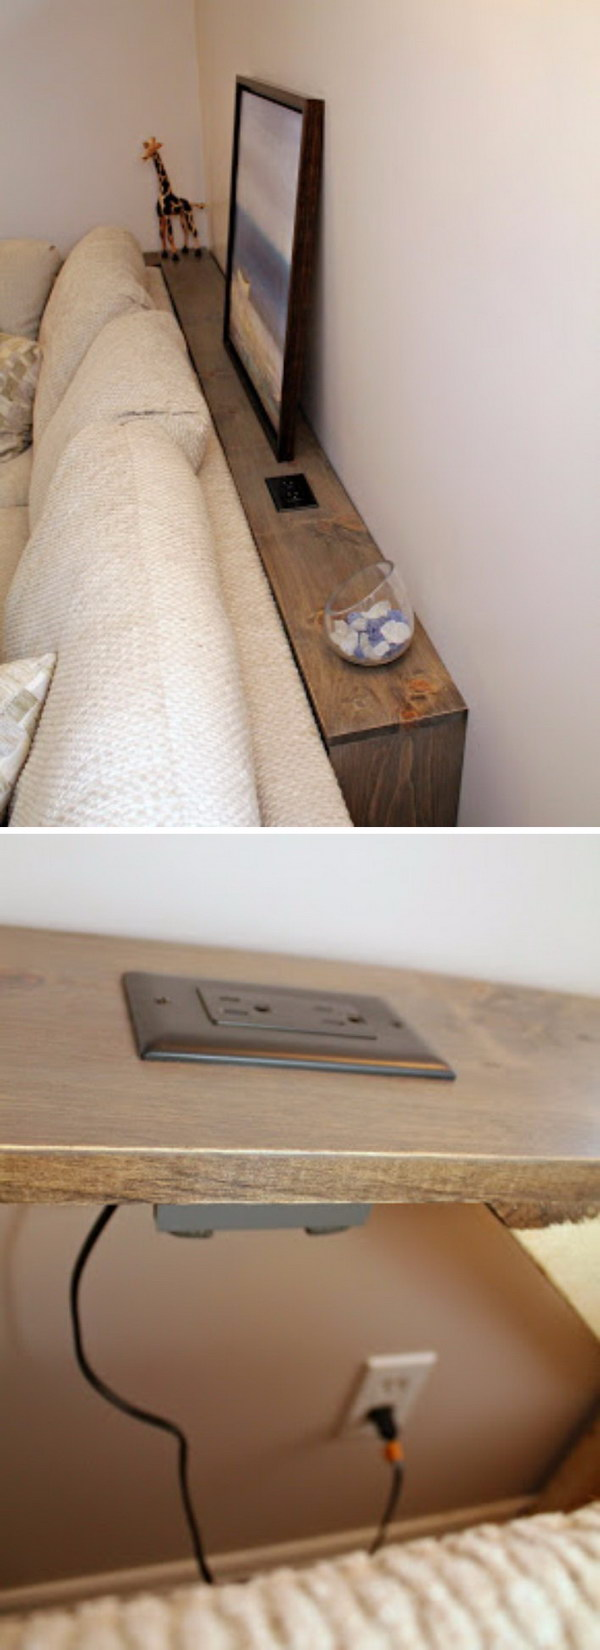 Stunning Outlets Allows You Plug Front Yourelectronics Ways To Make Use Extra Table Behind Couch This Diy Sofa Table Behind Built Space Behind Couch Window Table Behind Couch Diy houzz 01 Table Behind Couch